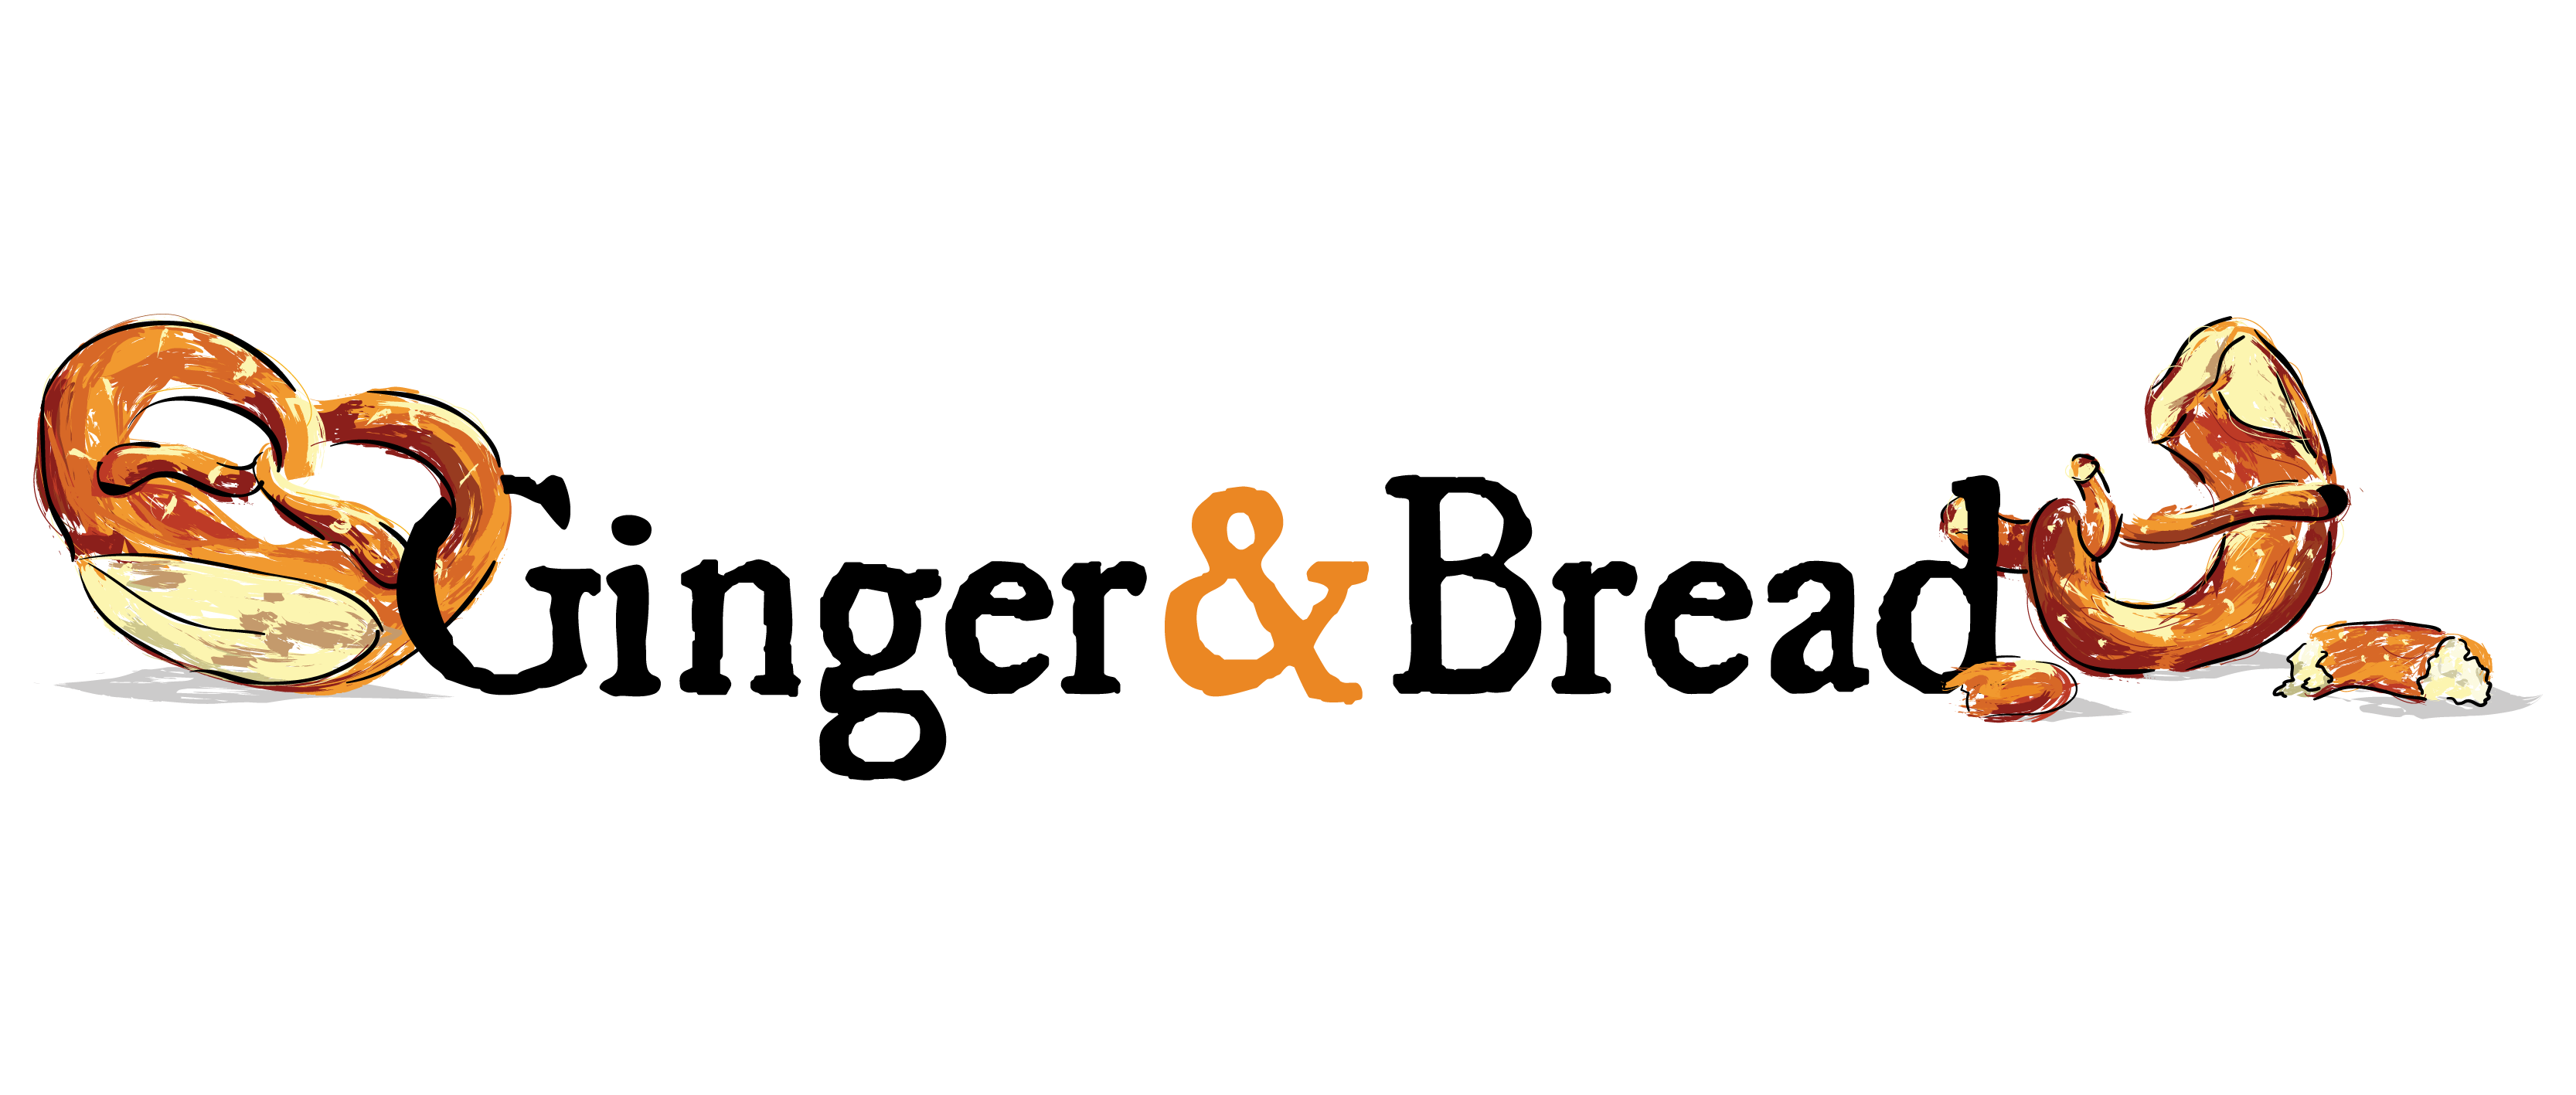 Create a modern logo for a baking blog, reflecting its focus on Continental breads and patisserie.